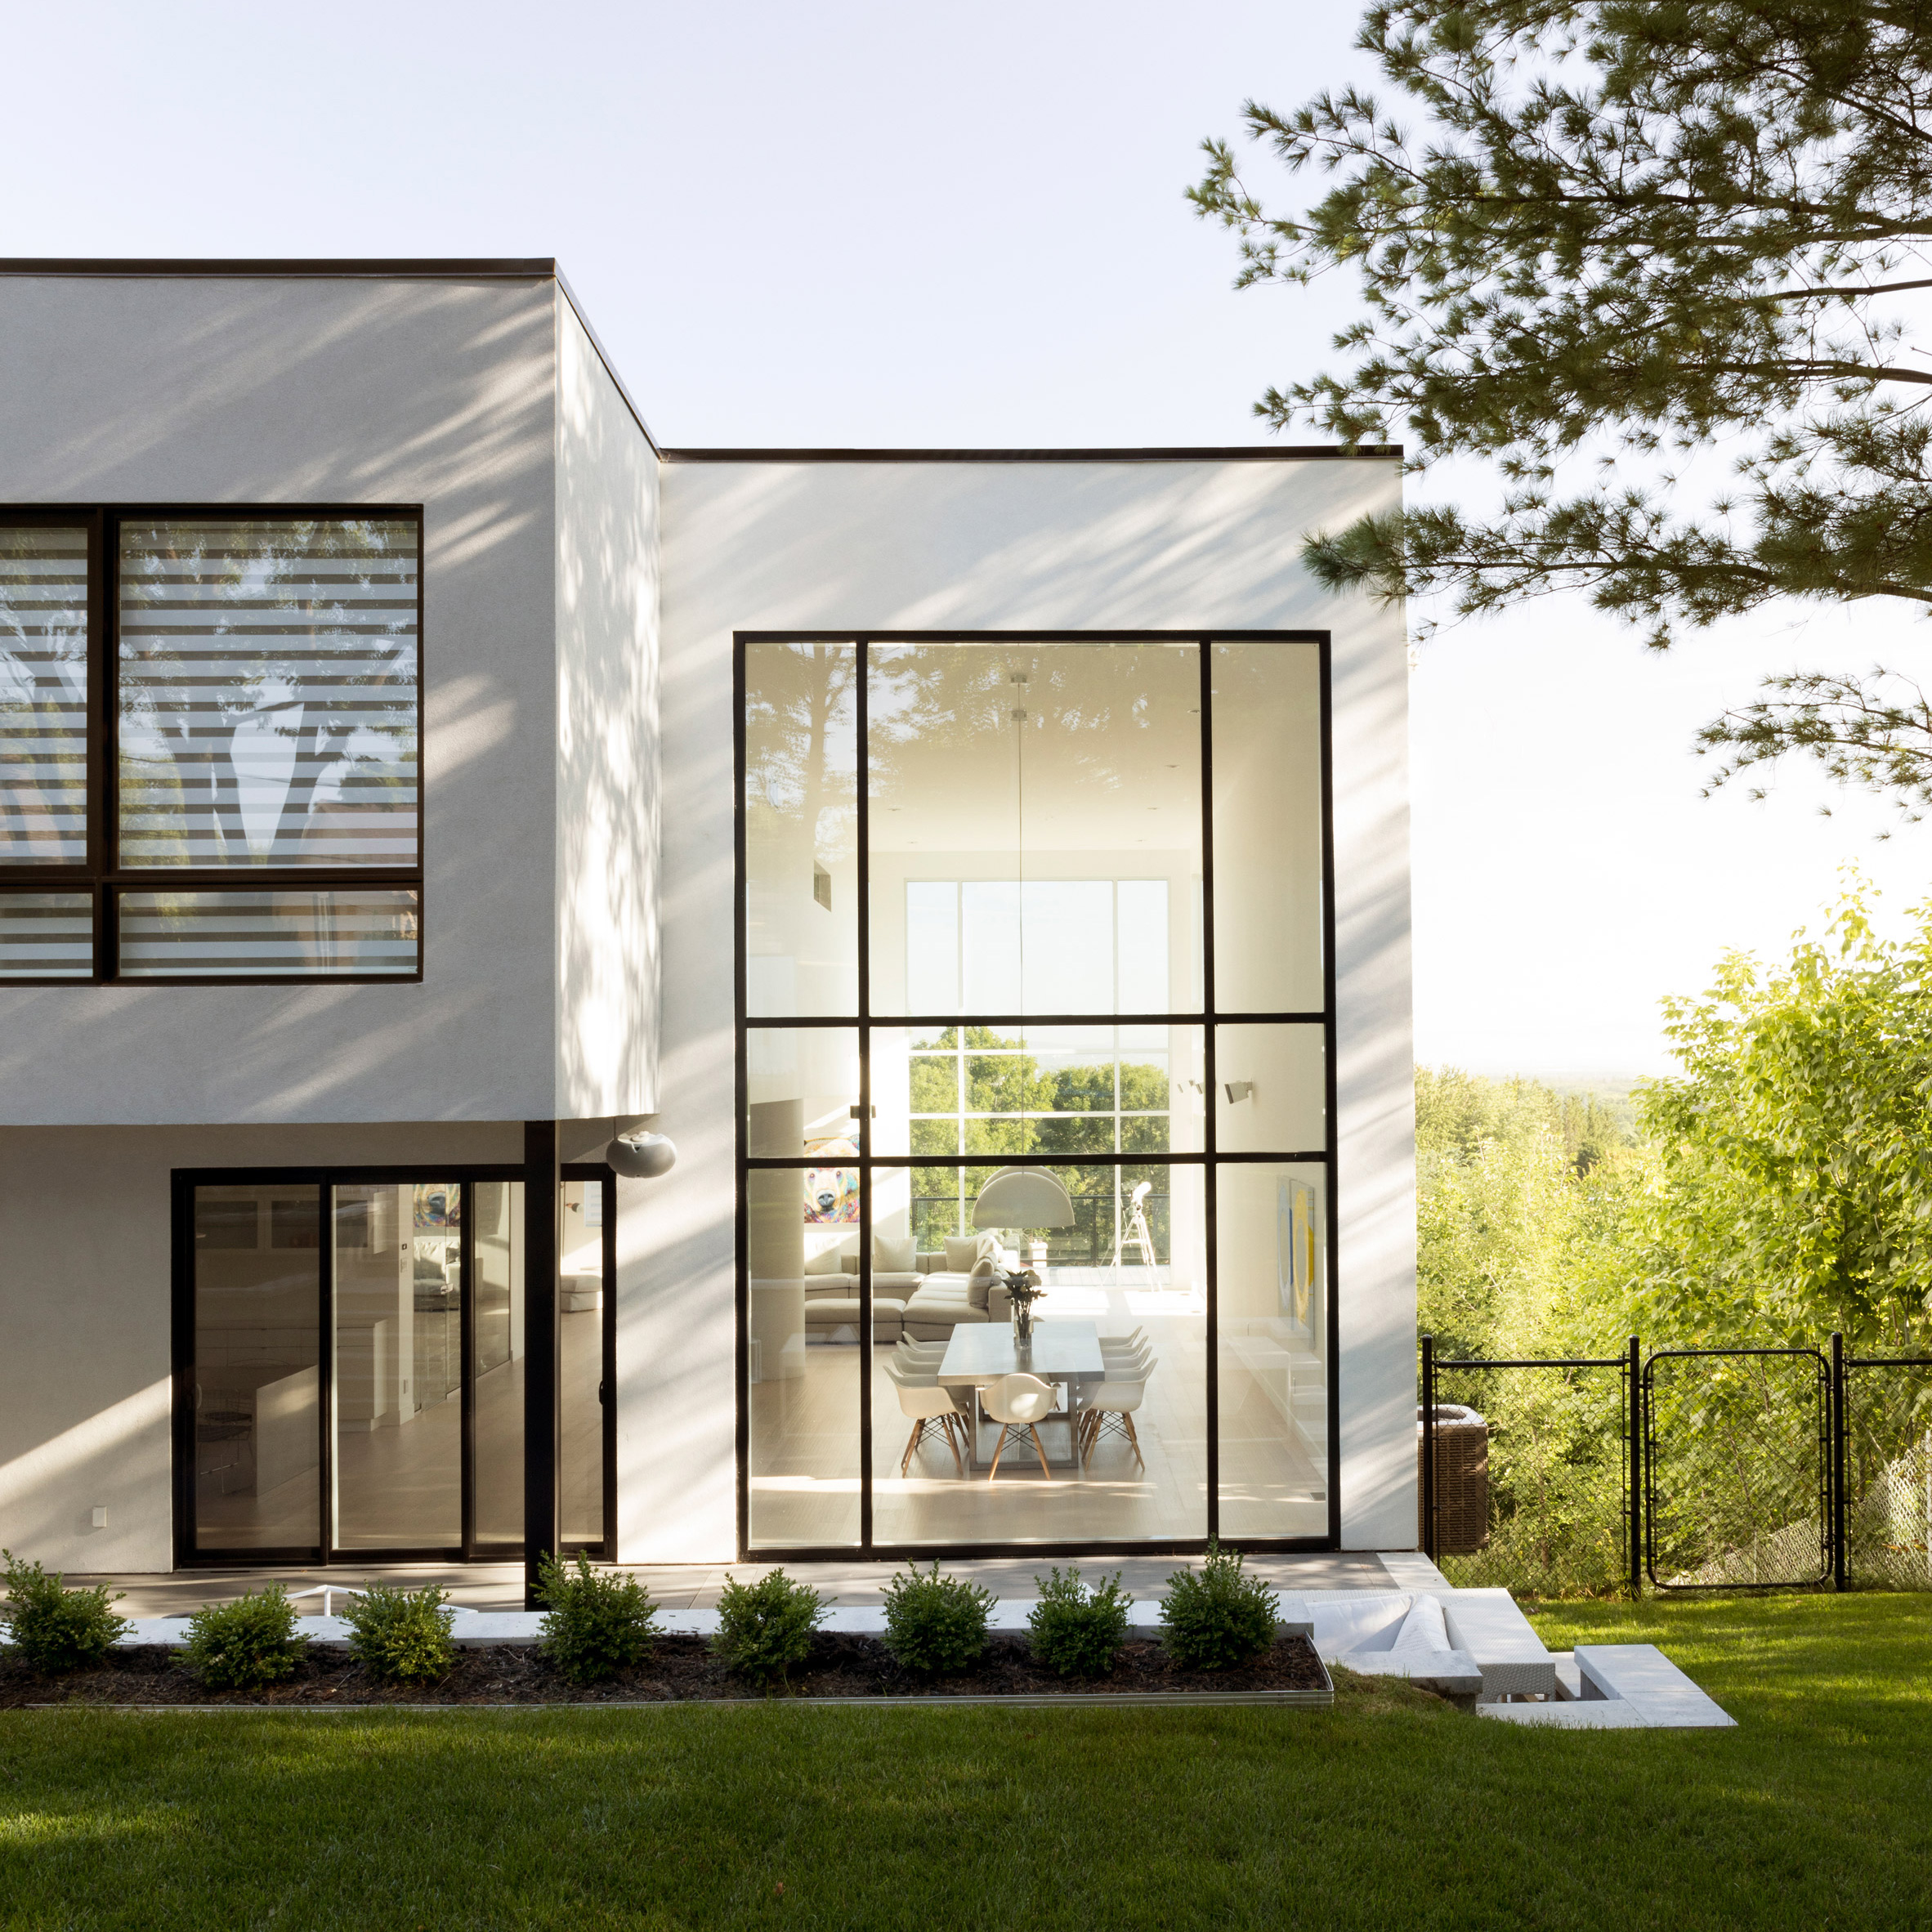 House design canada - Quebec Residence For Ice Hockey Player Includes Indoor Practice Rink